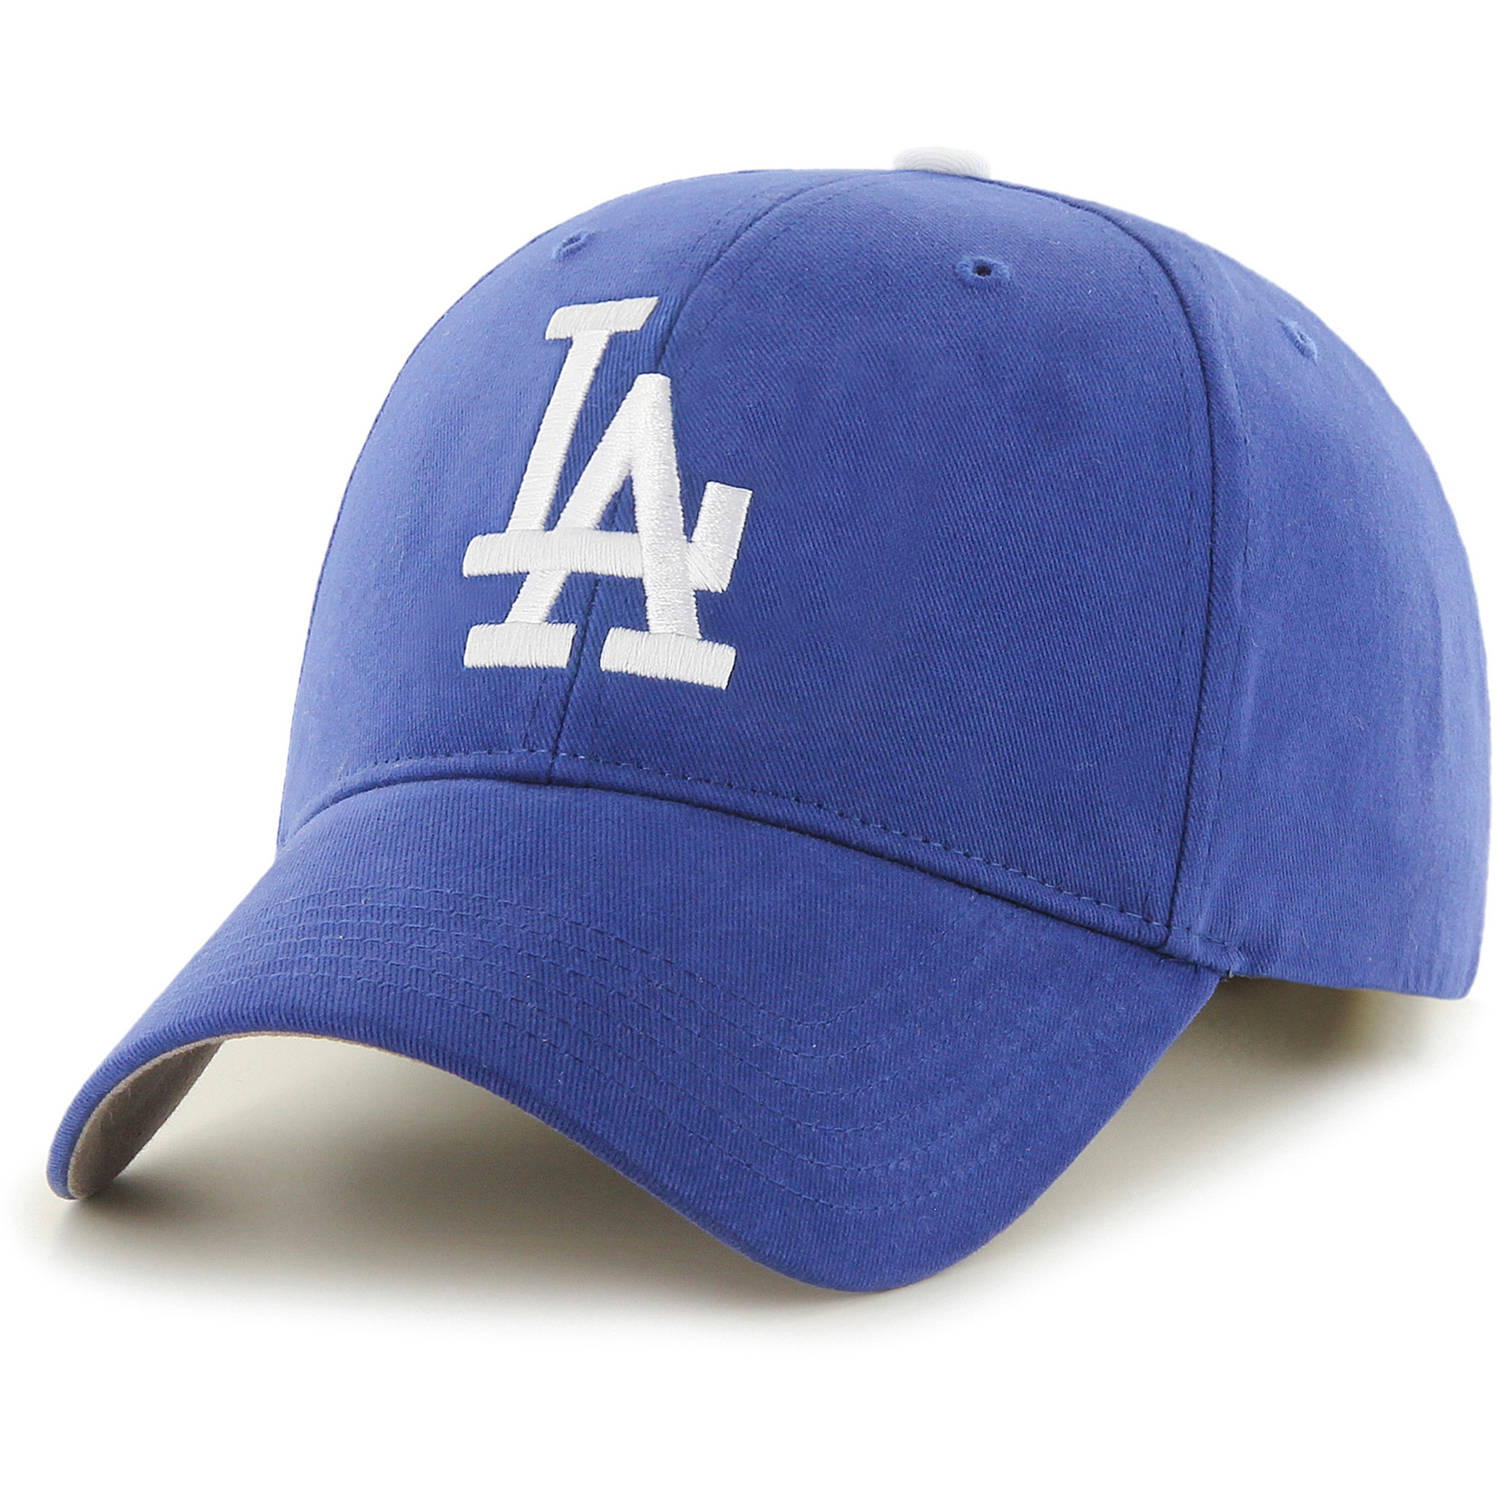 MLB Los Angeles Dodgers Basic Youth Adjustable Cap/Hat by Fan Favorite